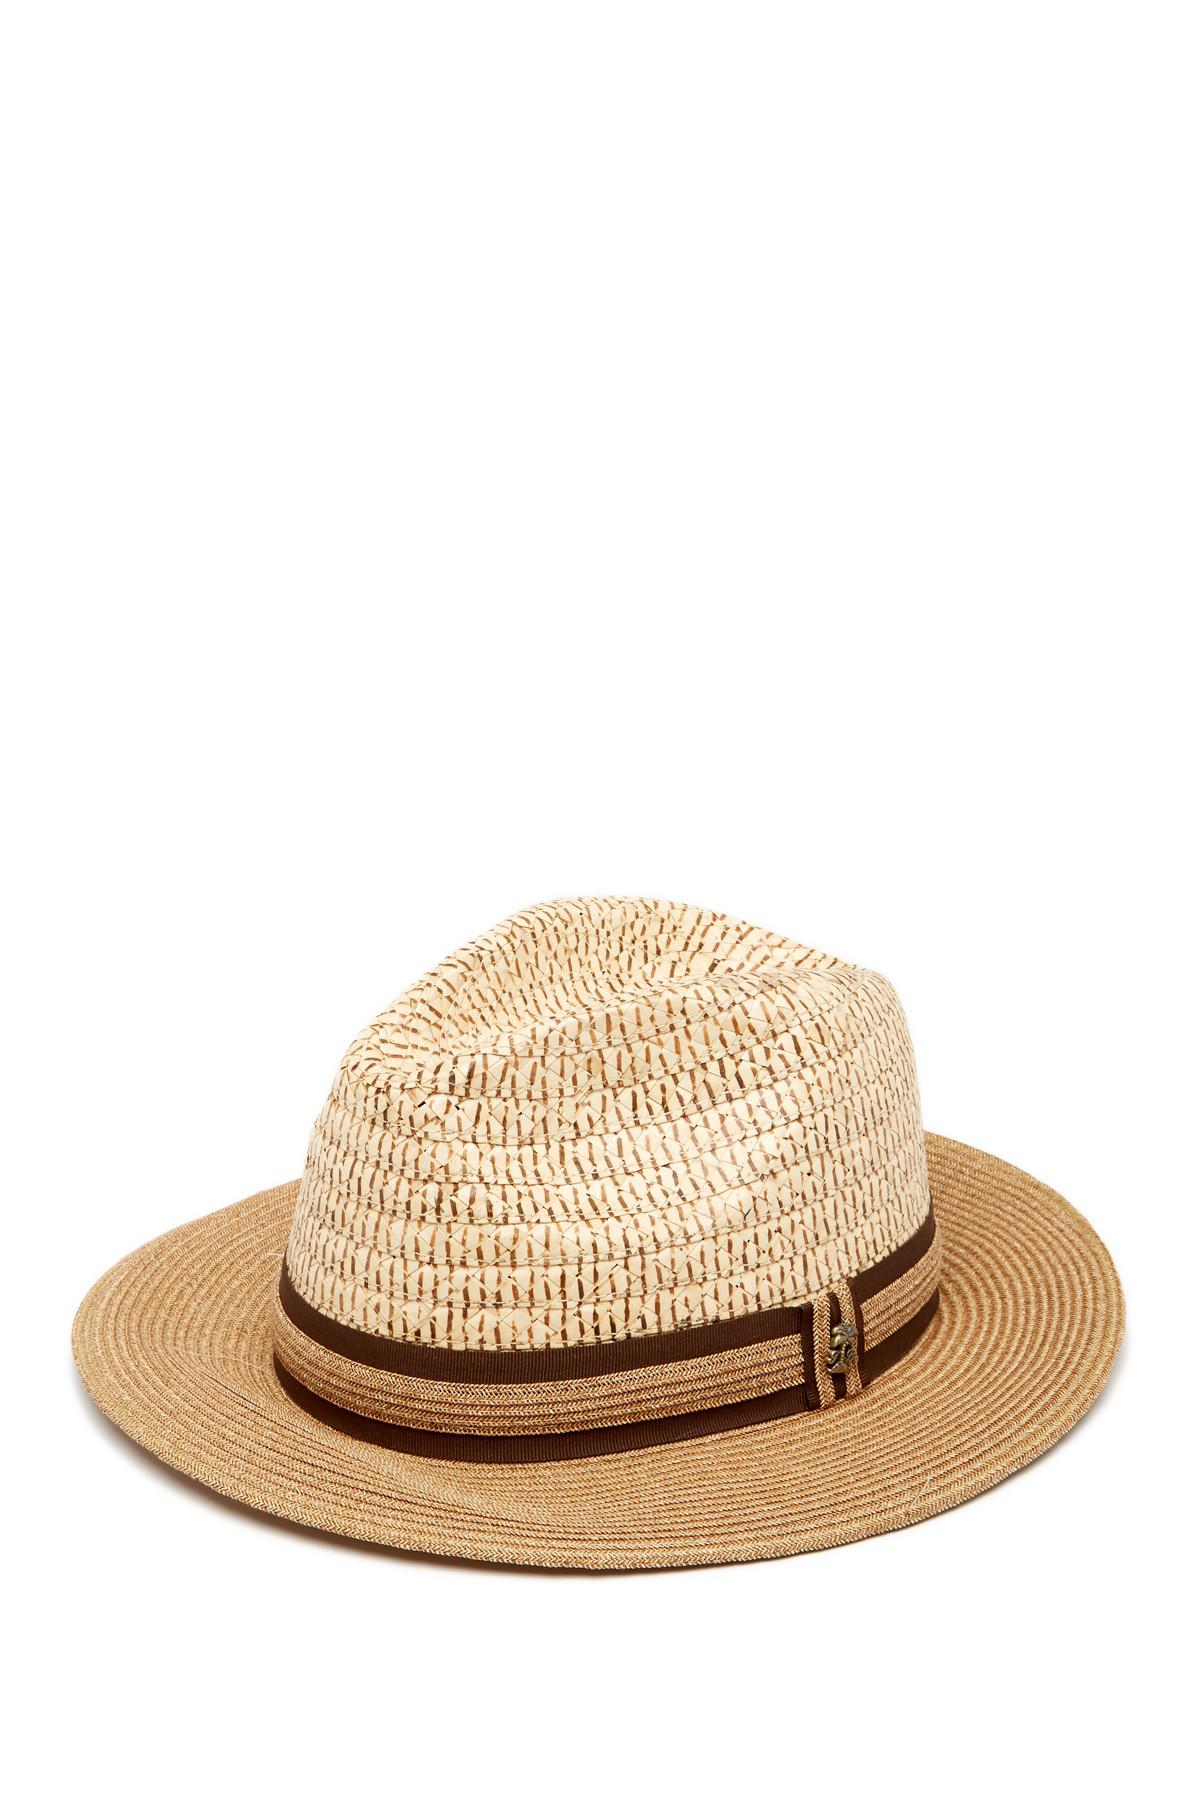 Lyst - Tommy Bahama Two-tone Fedora in Natural for Men f78d2f312b25